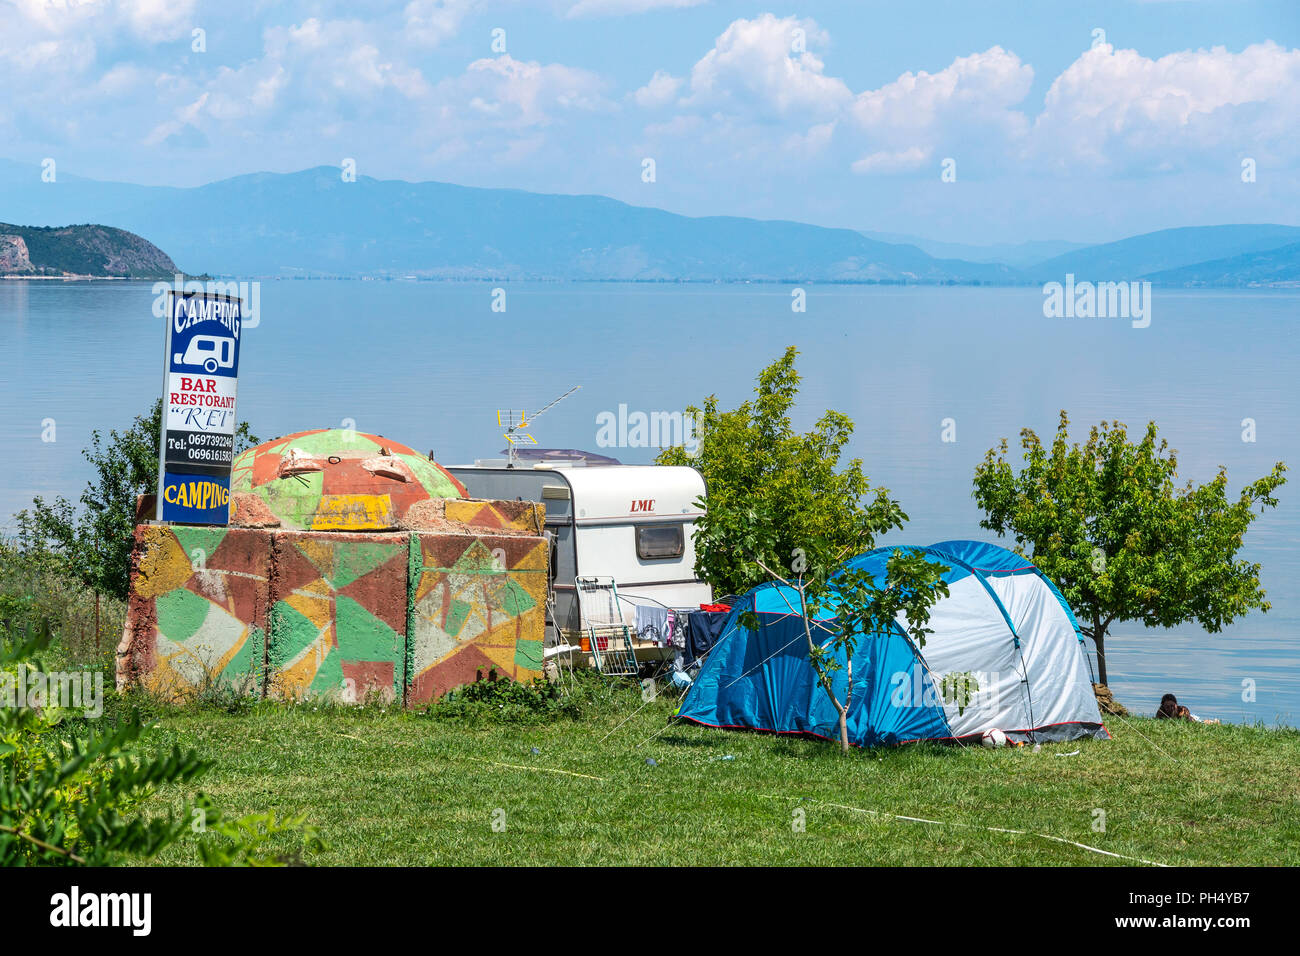 A campsite with painted communist era bunker on the shores of Lake Ohrid at Pogradeci, South eastern Albania. - Stock Image